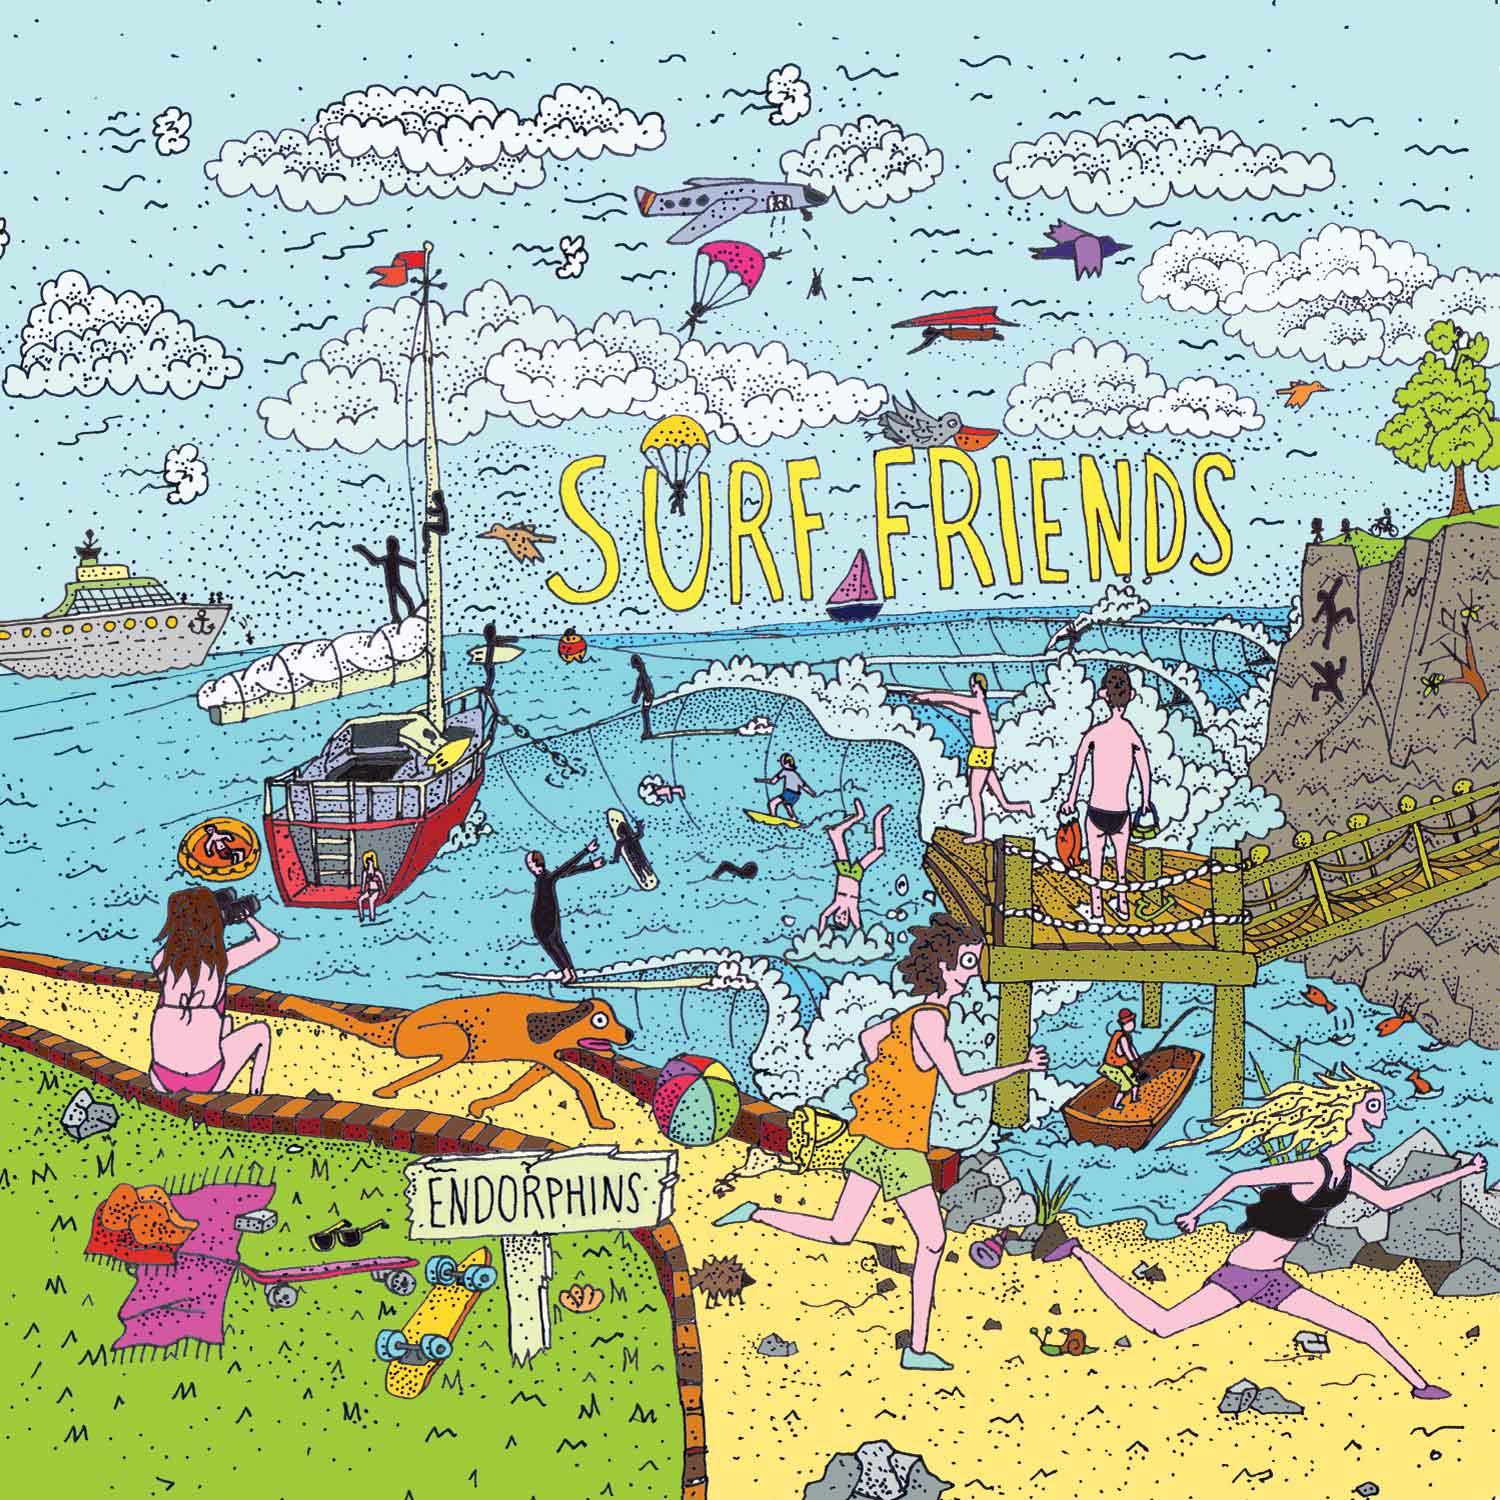 Surf Friends - Endorphins Album Art